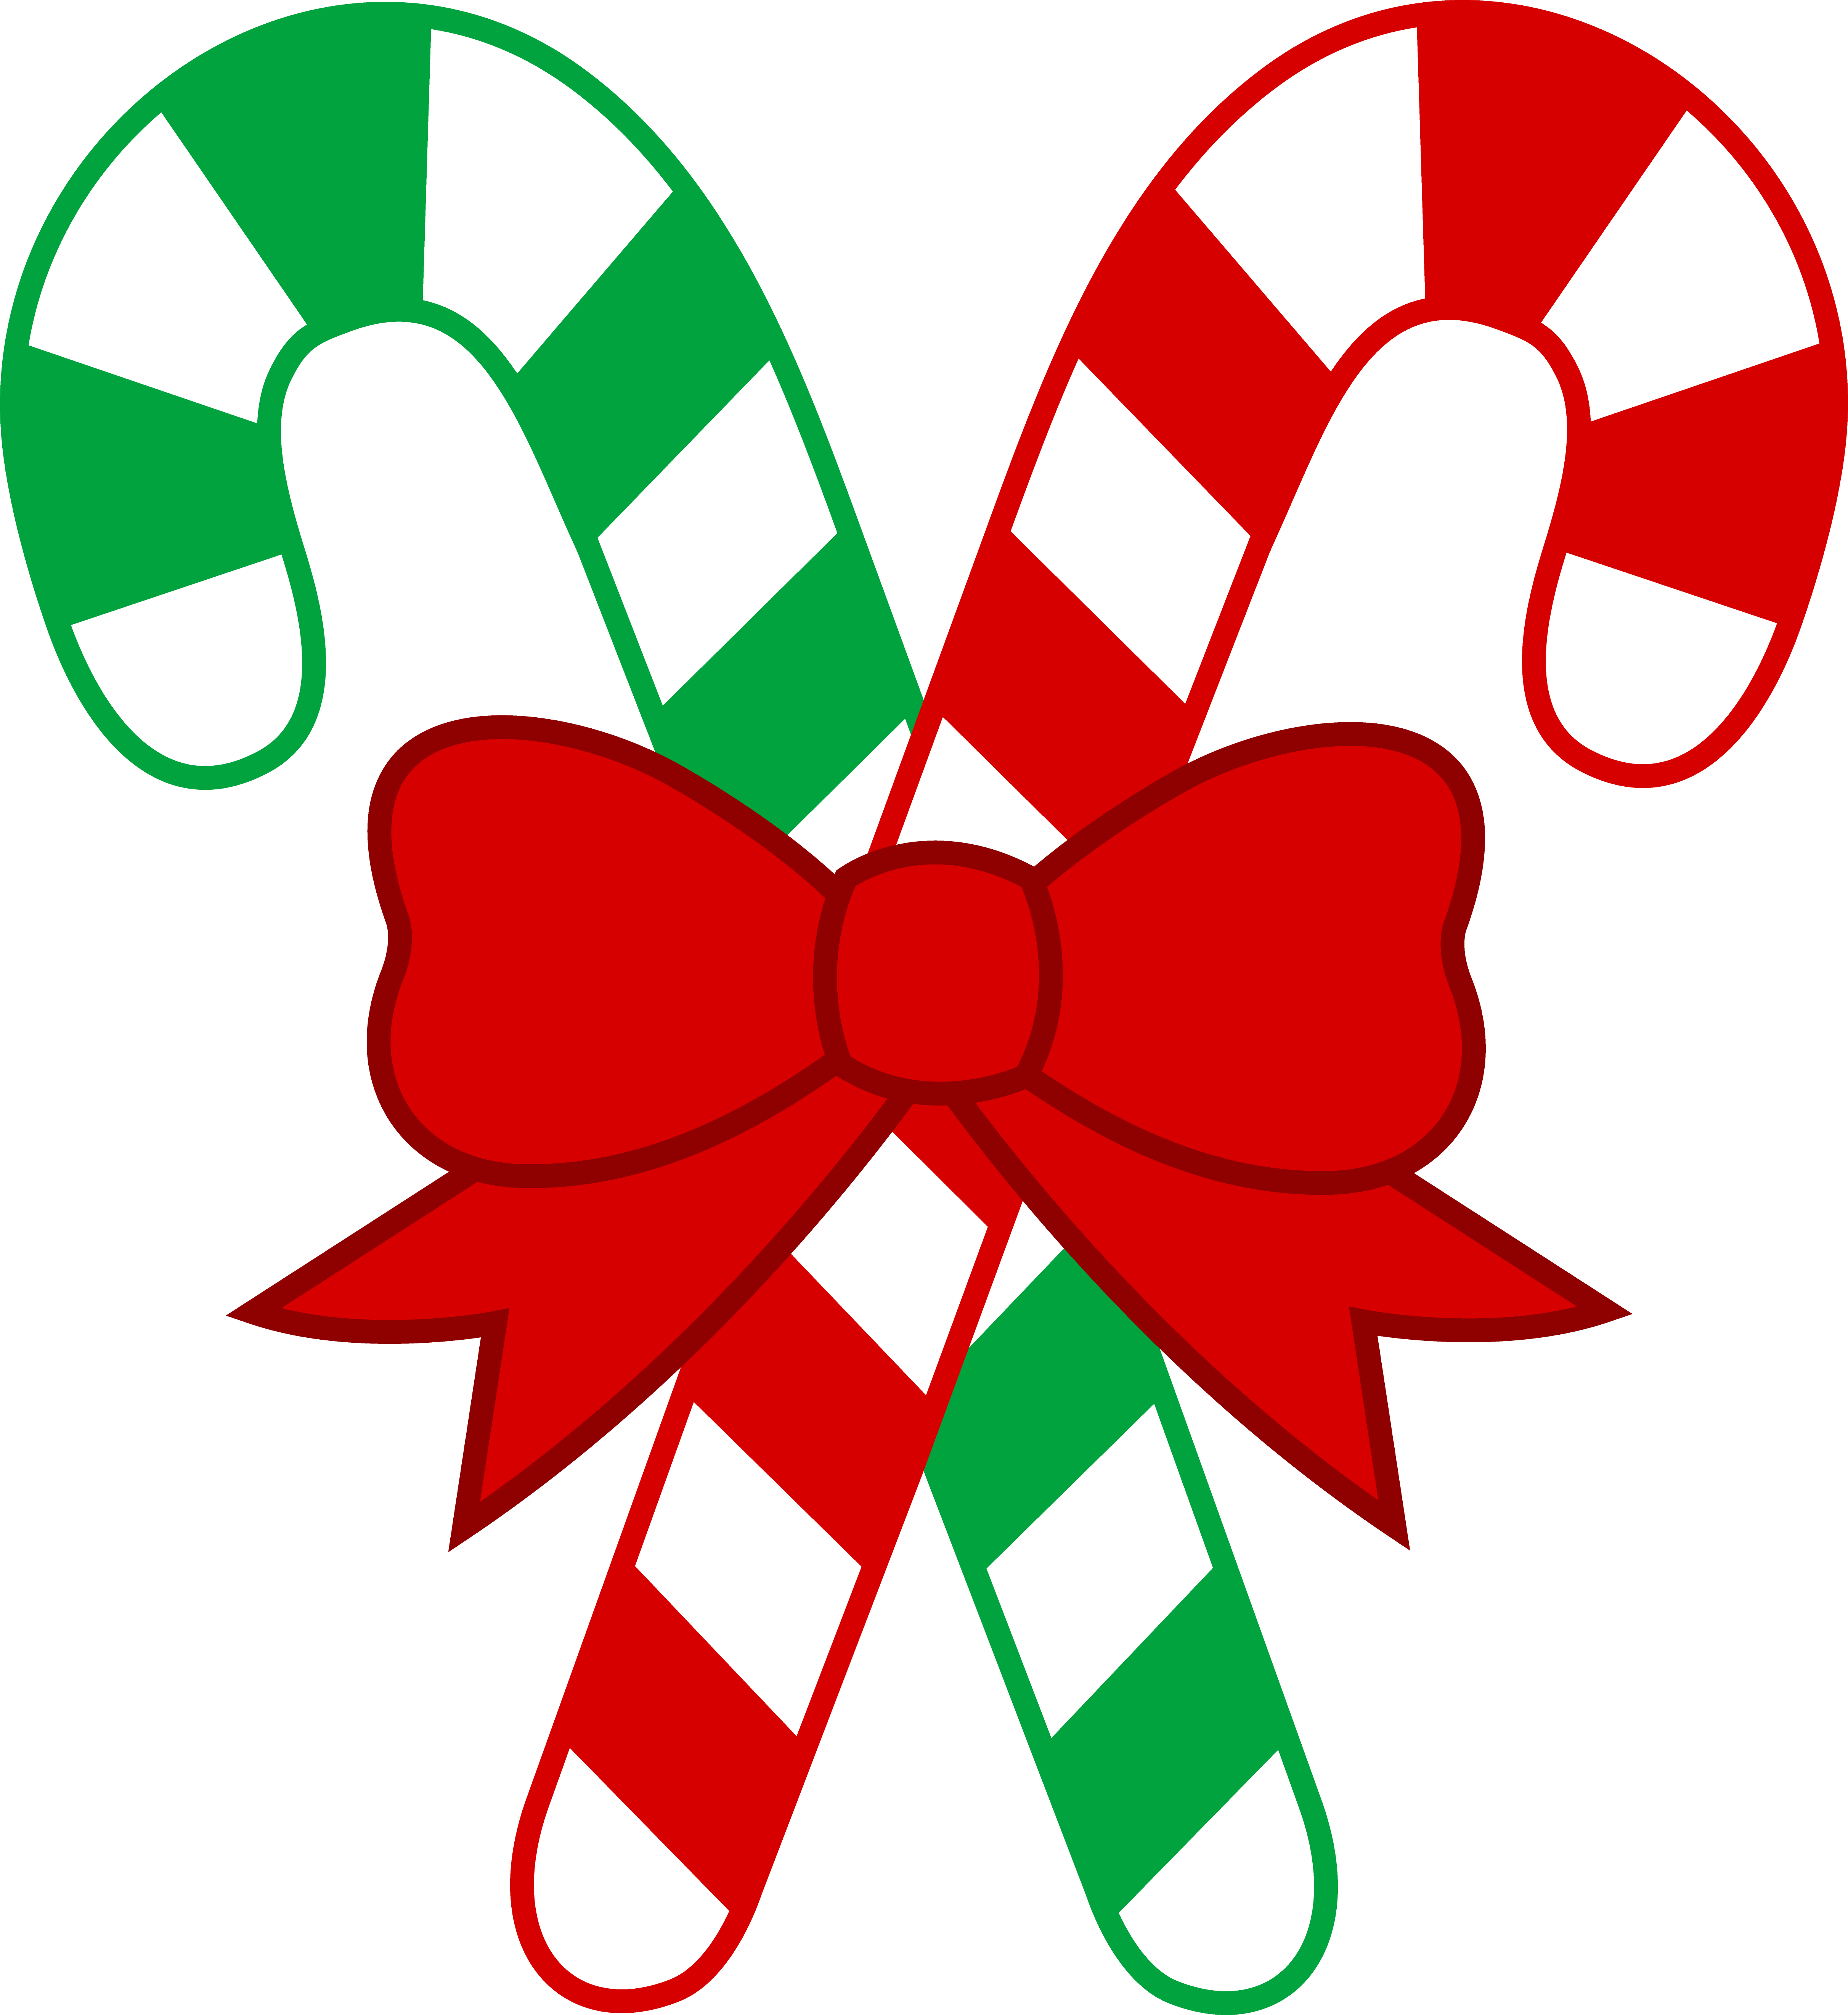 christmas in july clipart at getdrawings com free for personal use rh getdrawings com